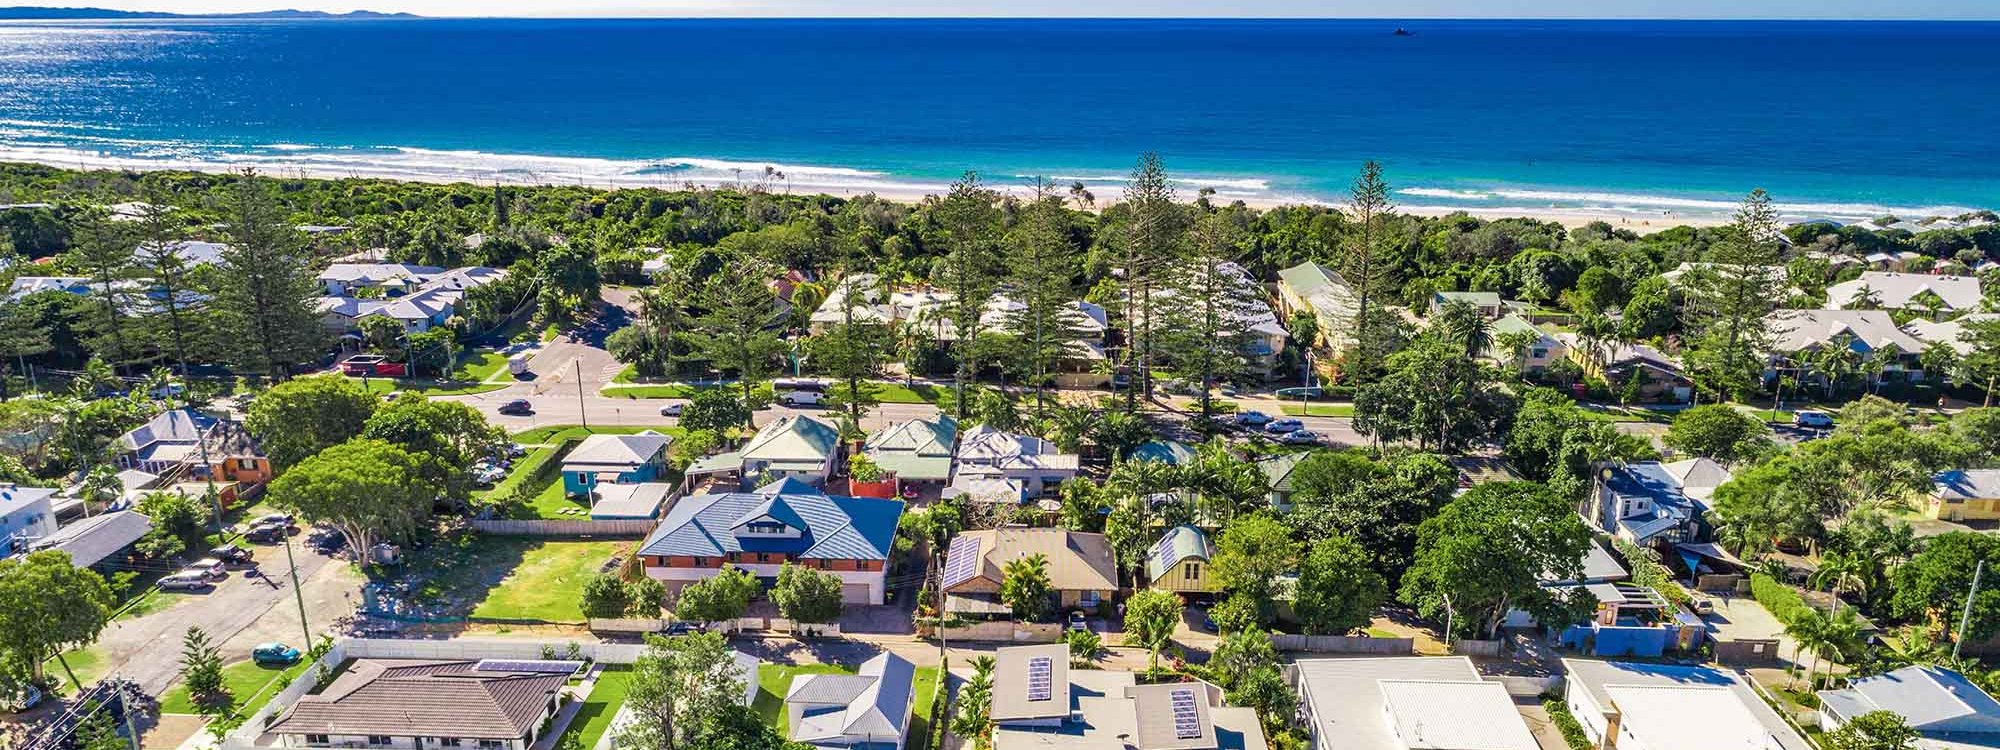 Clique 3 - Byron Bay - Aerial Towards Beach